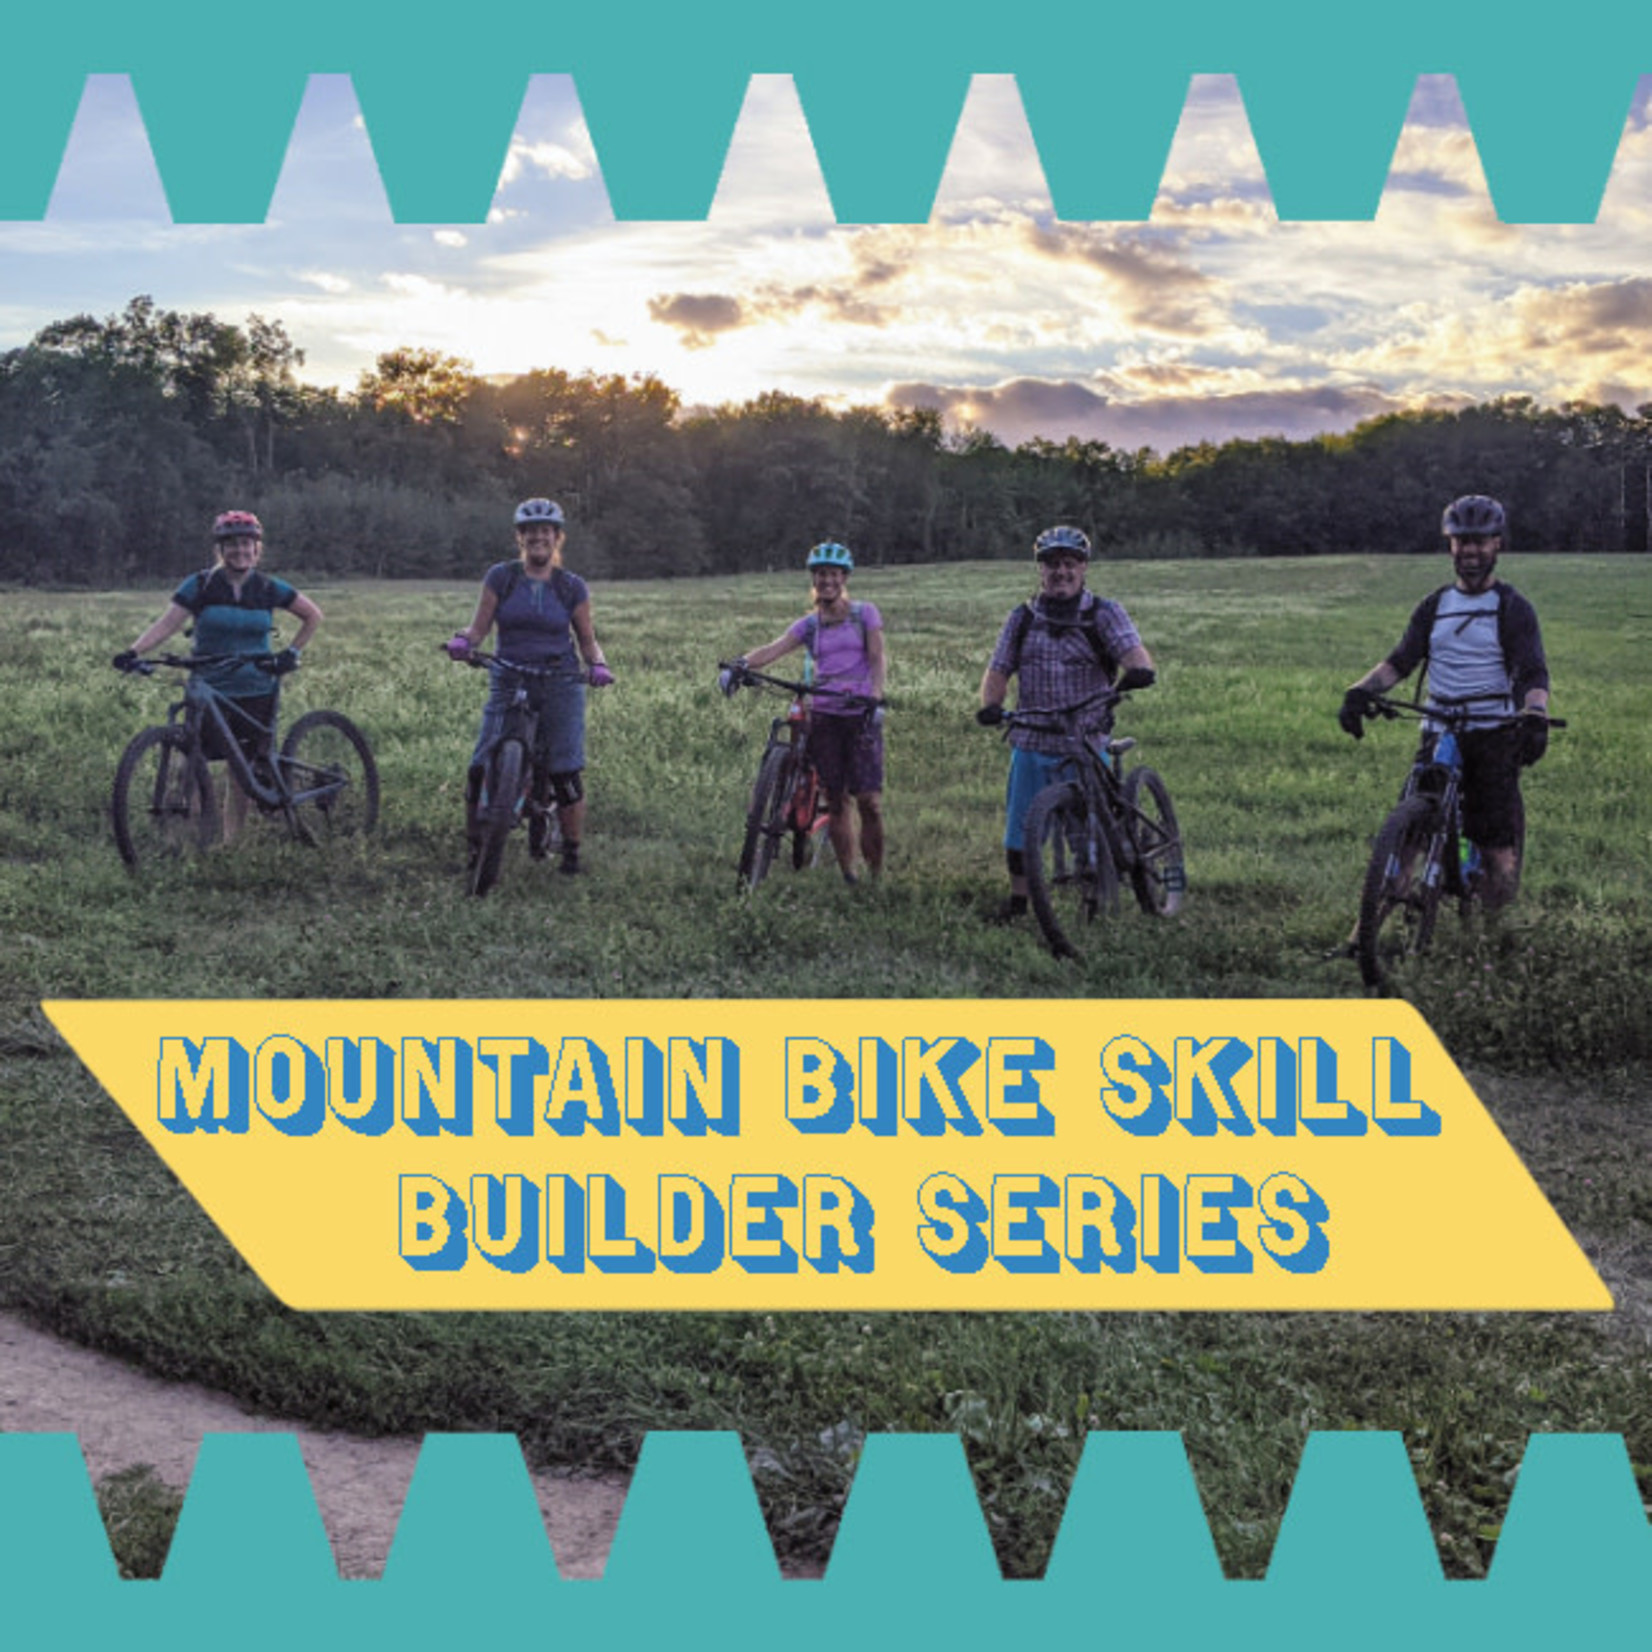 Portland Gear Hub MTB Skill Builder Fundamentals 1&2 Classes - Gorham Trails - June 8th & 15th